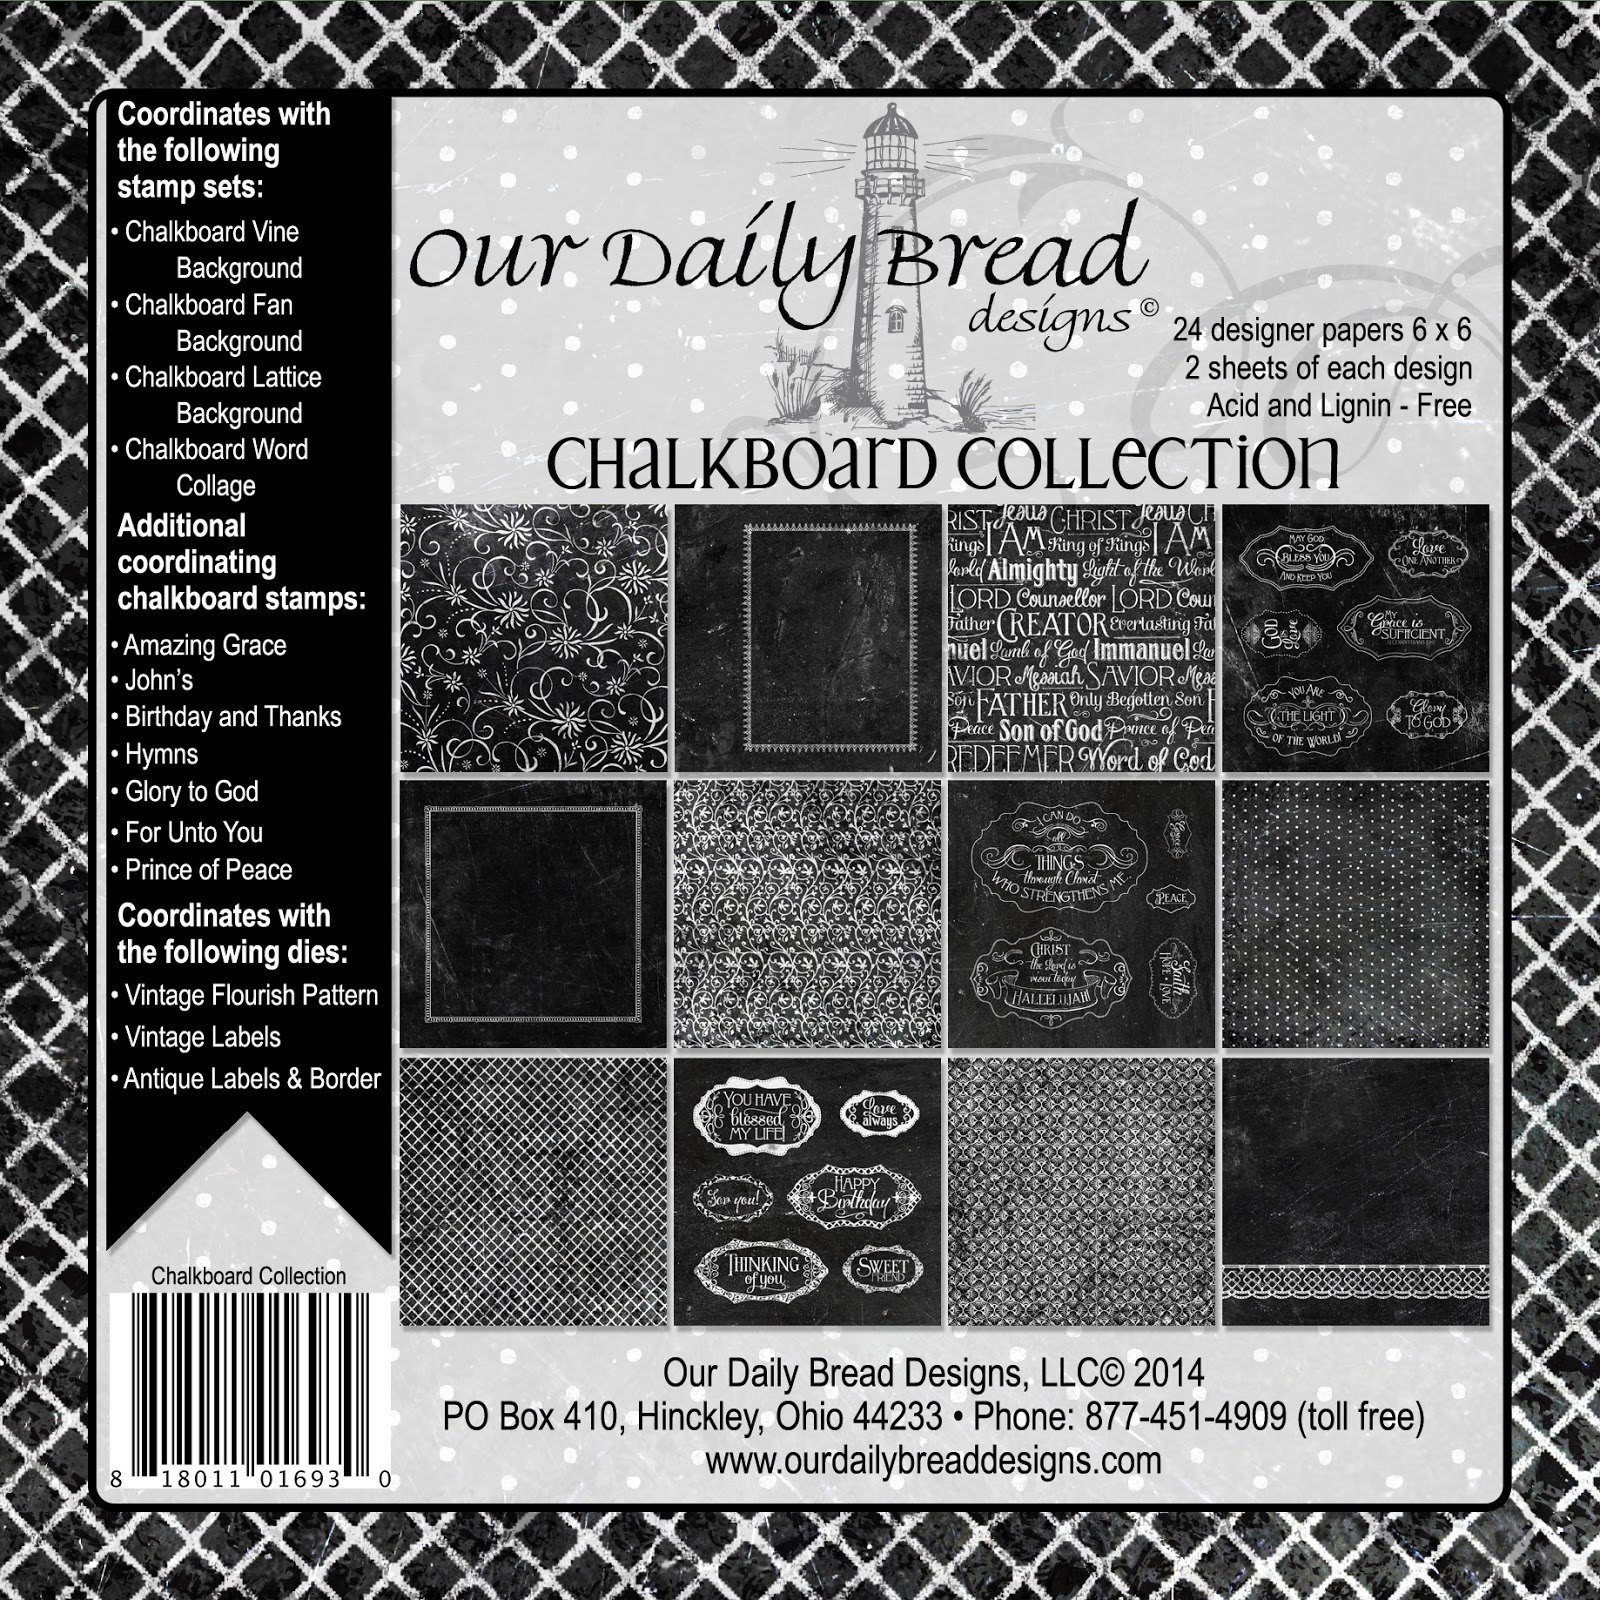 http://www.ourdailybreaddesigns.com/index.php/chalkboard-collection-6x6-paper-pad.html